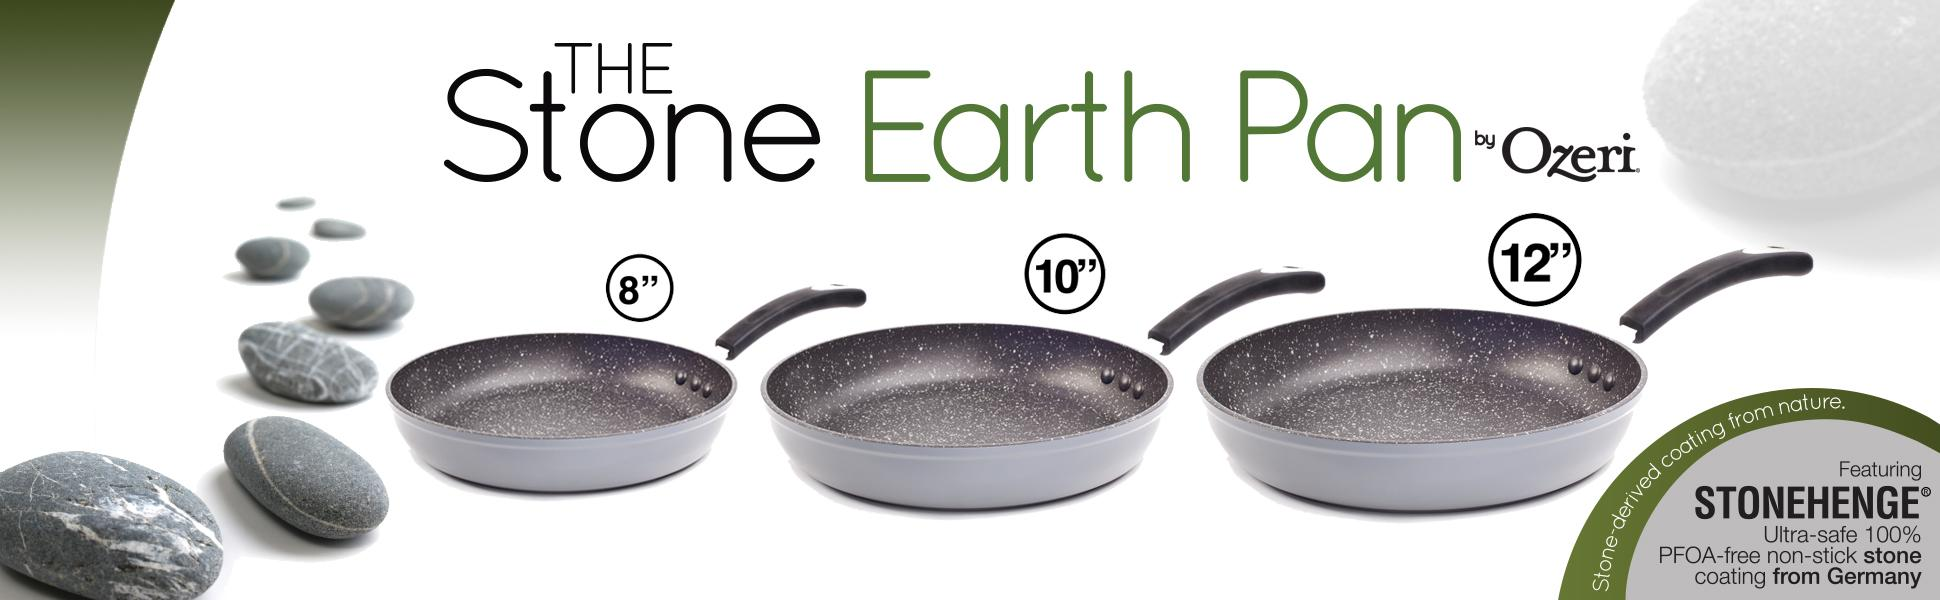 Amazon Com 12 Quot Stone Earth Frying Pan By Ozeri With 100